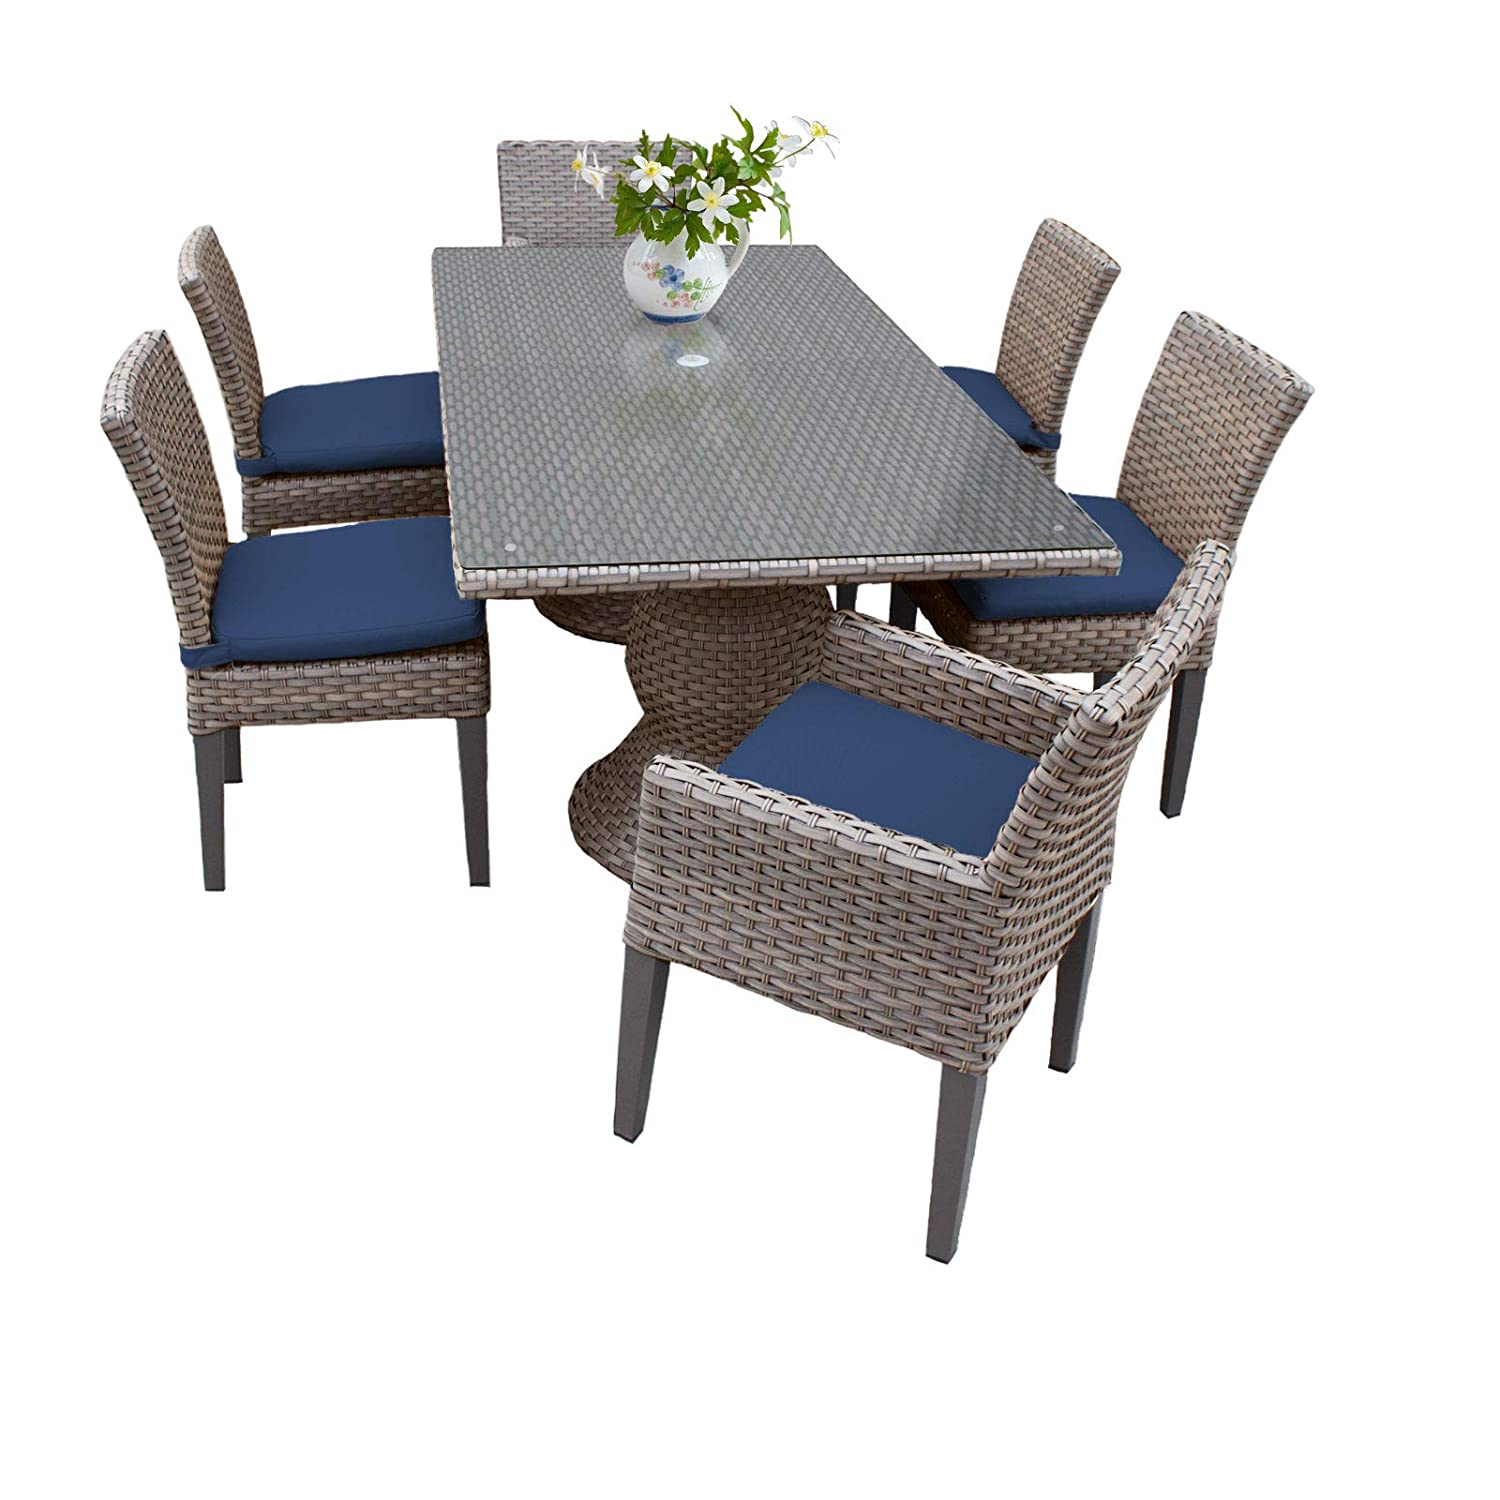 Amazon com tk classics oasis rectangular outdoor patio dining table with 4 armless chairs and 2 arm chairs navy garden outdoor